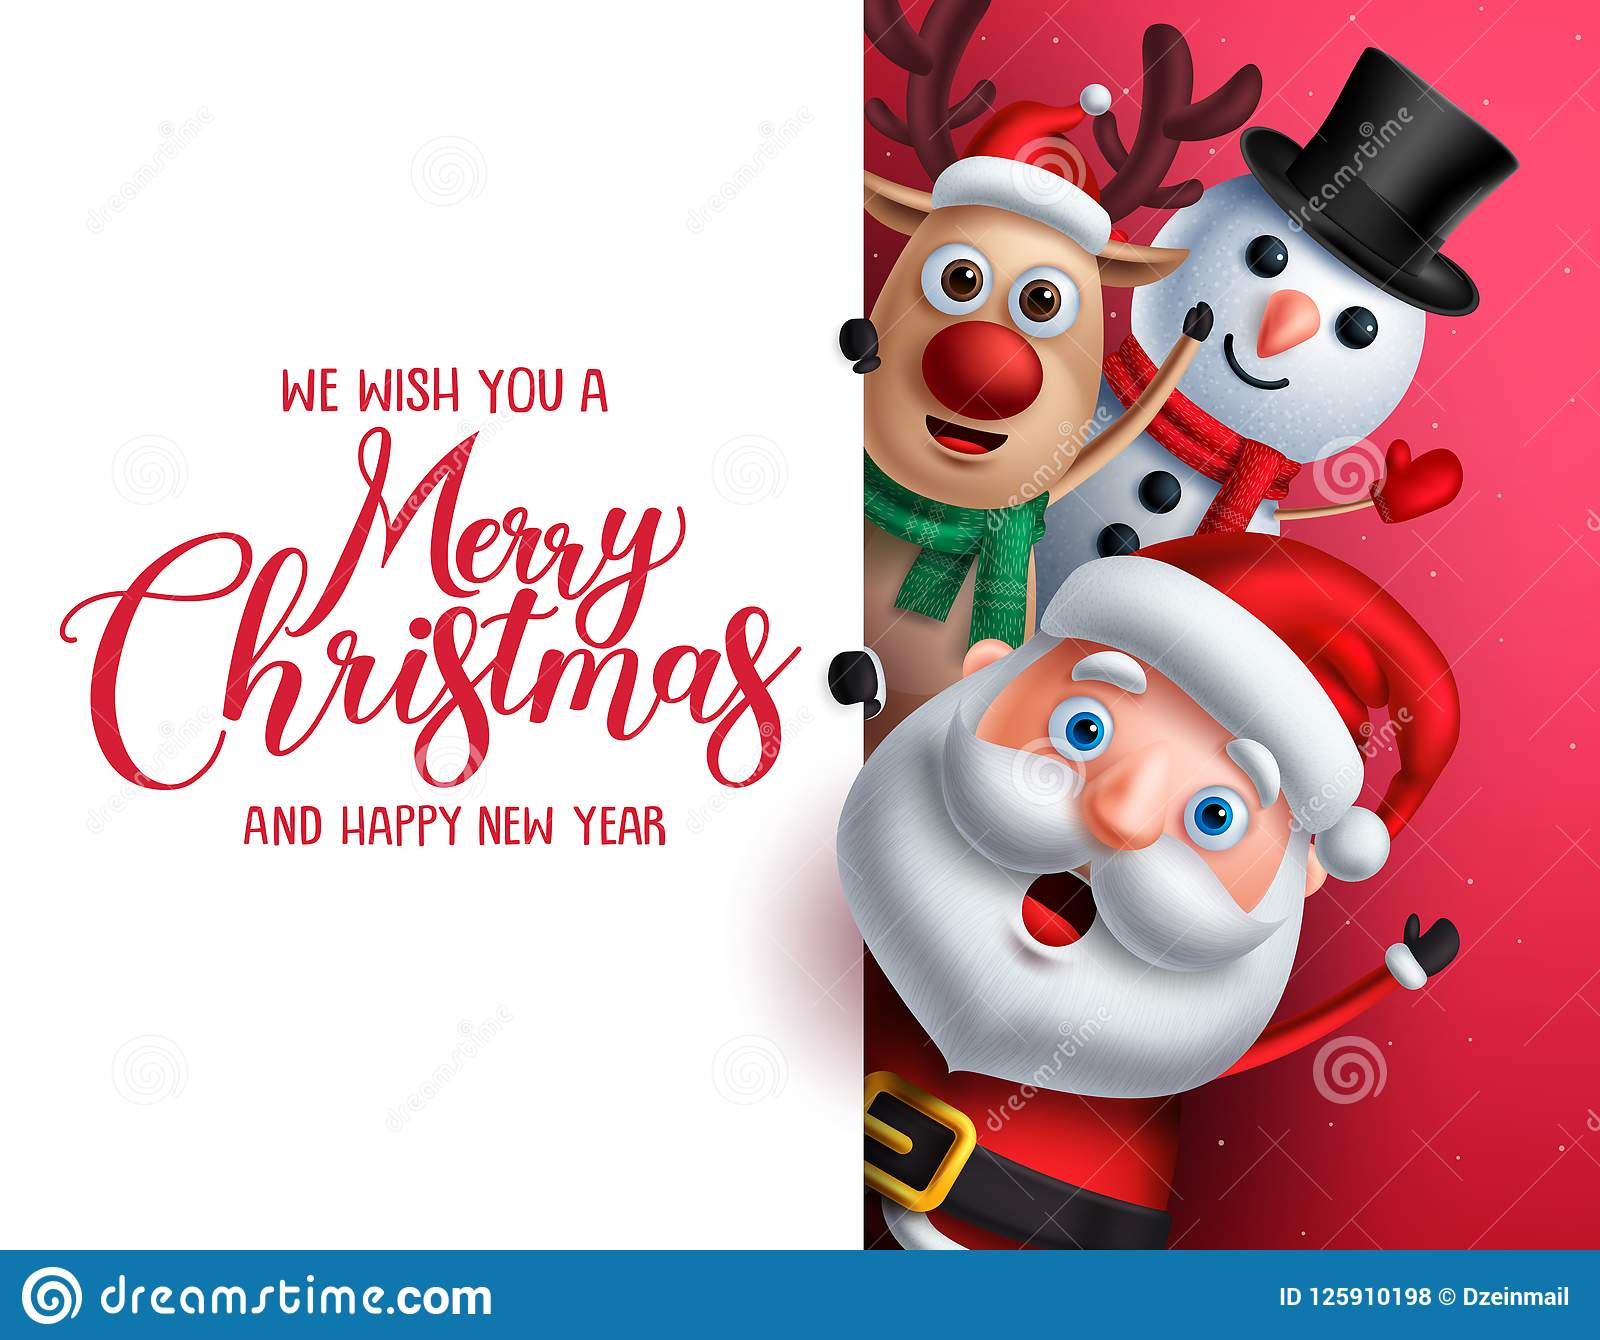 Merry Christmas Greeting Template With Santa Claus, Snowman And ...